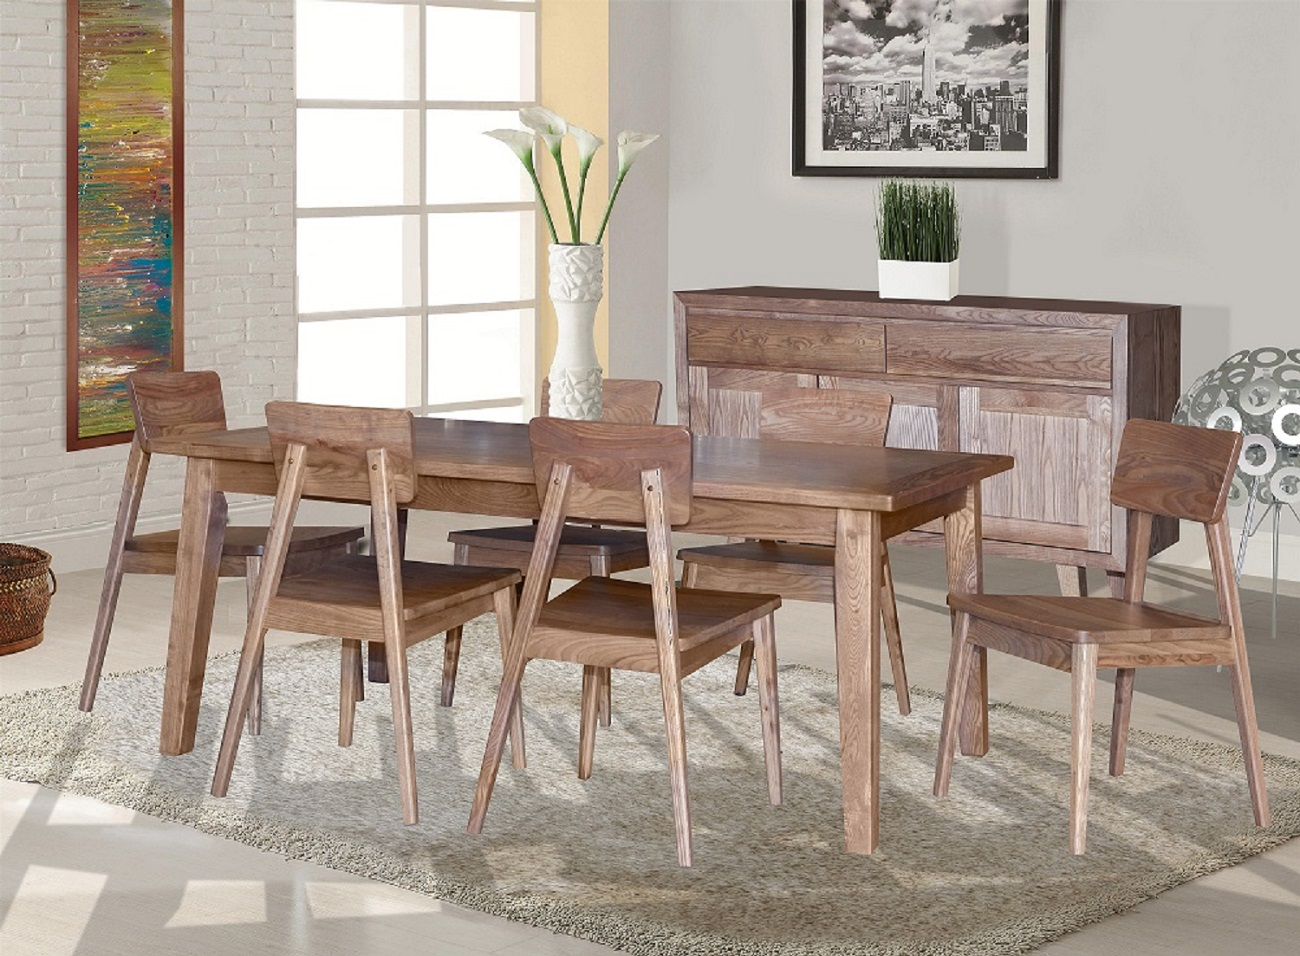 Ascension Dining with Timber Chair